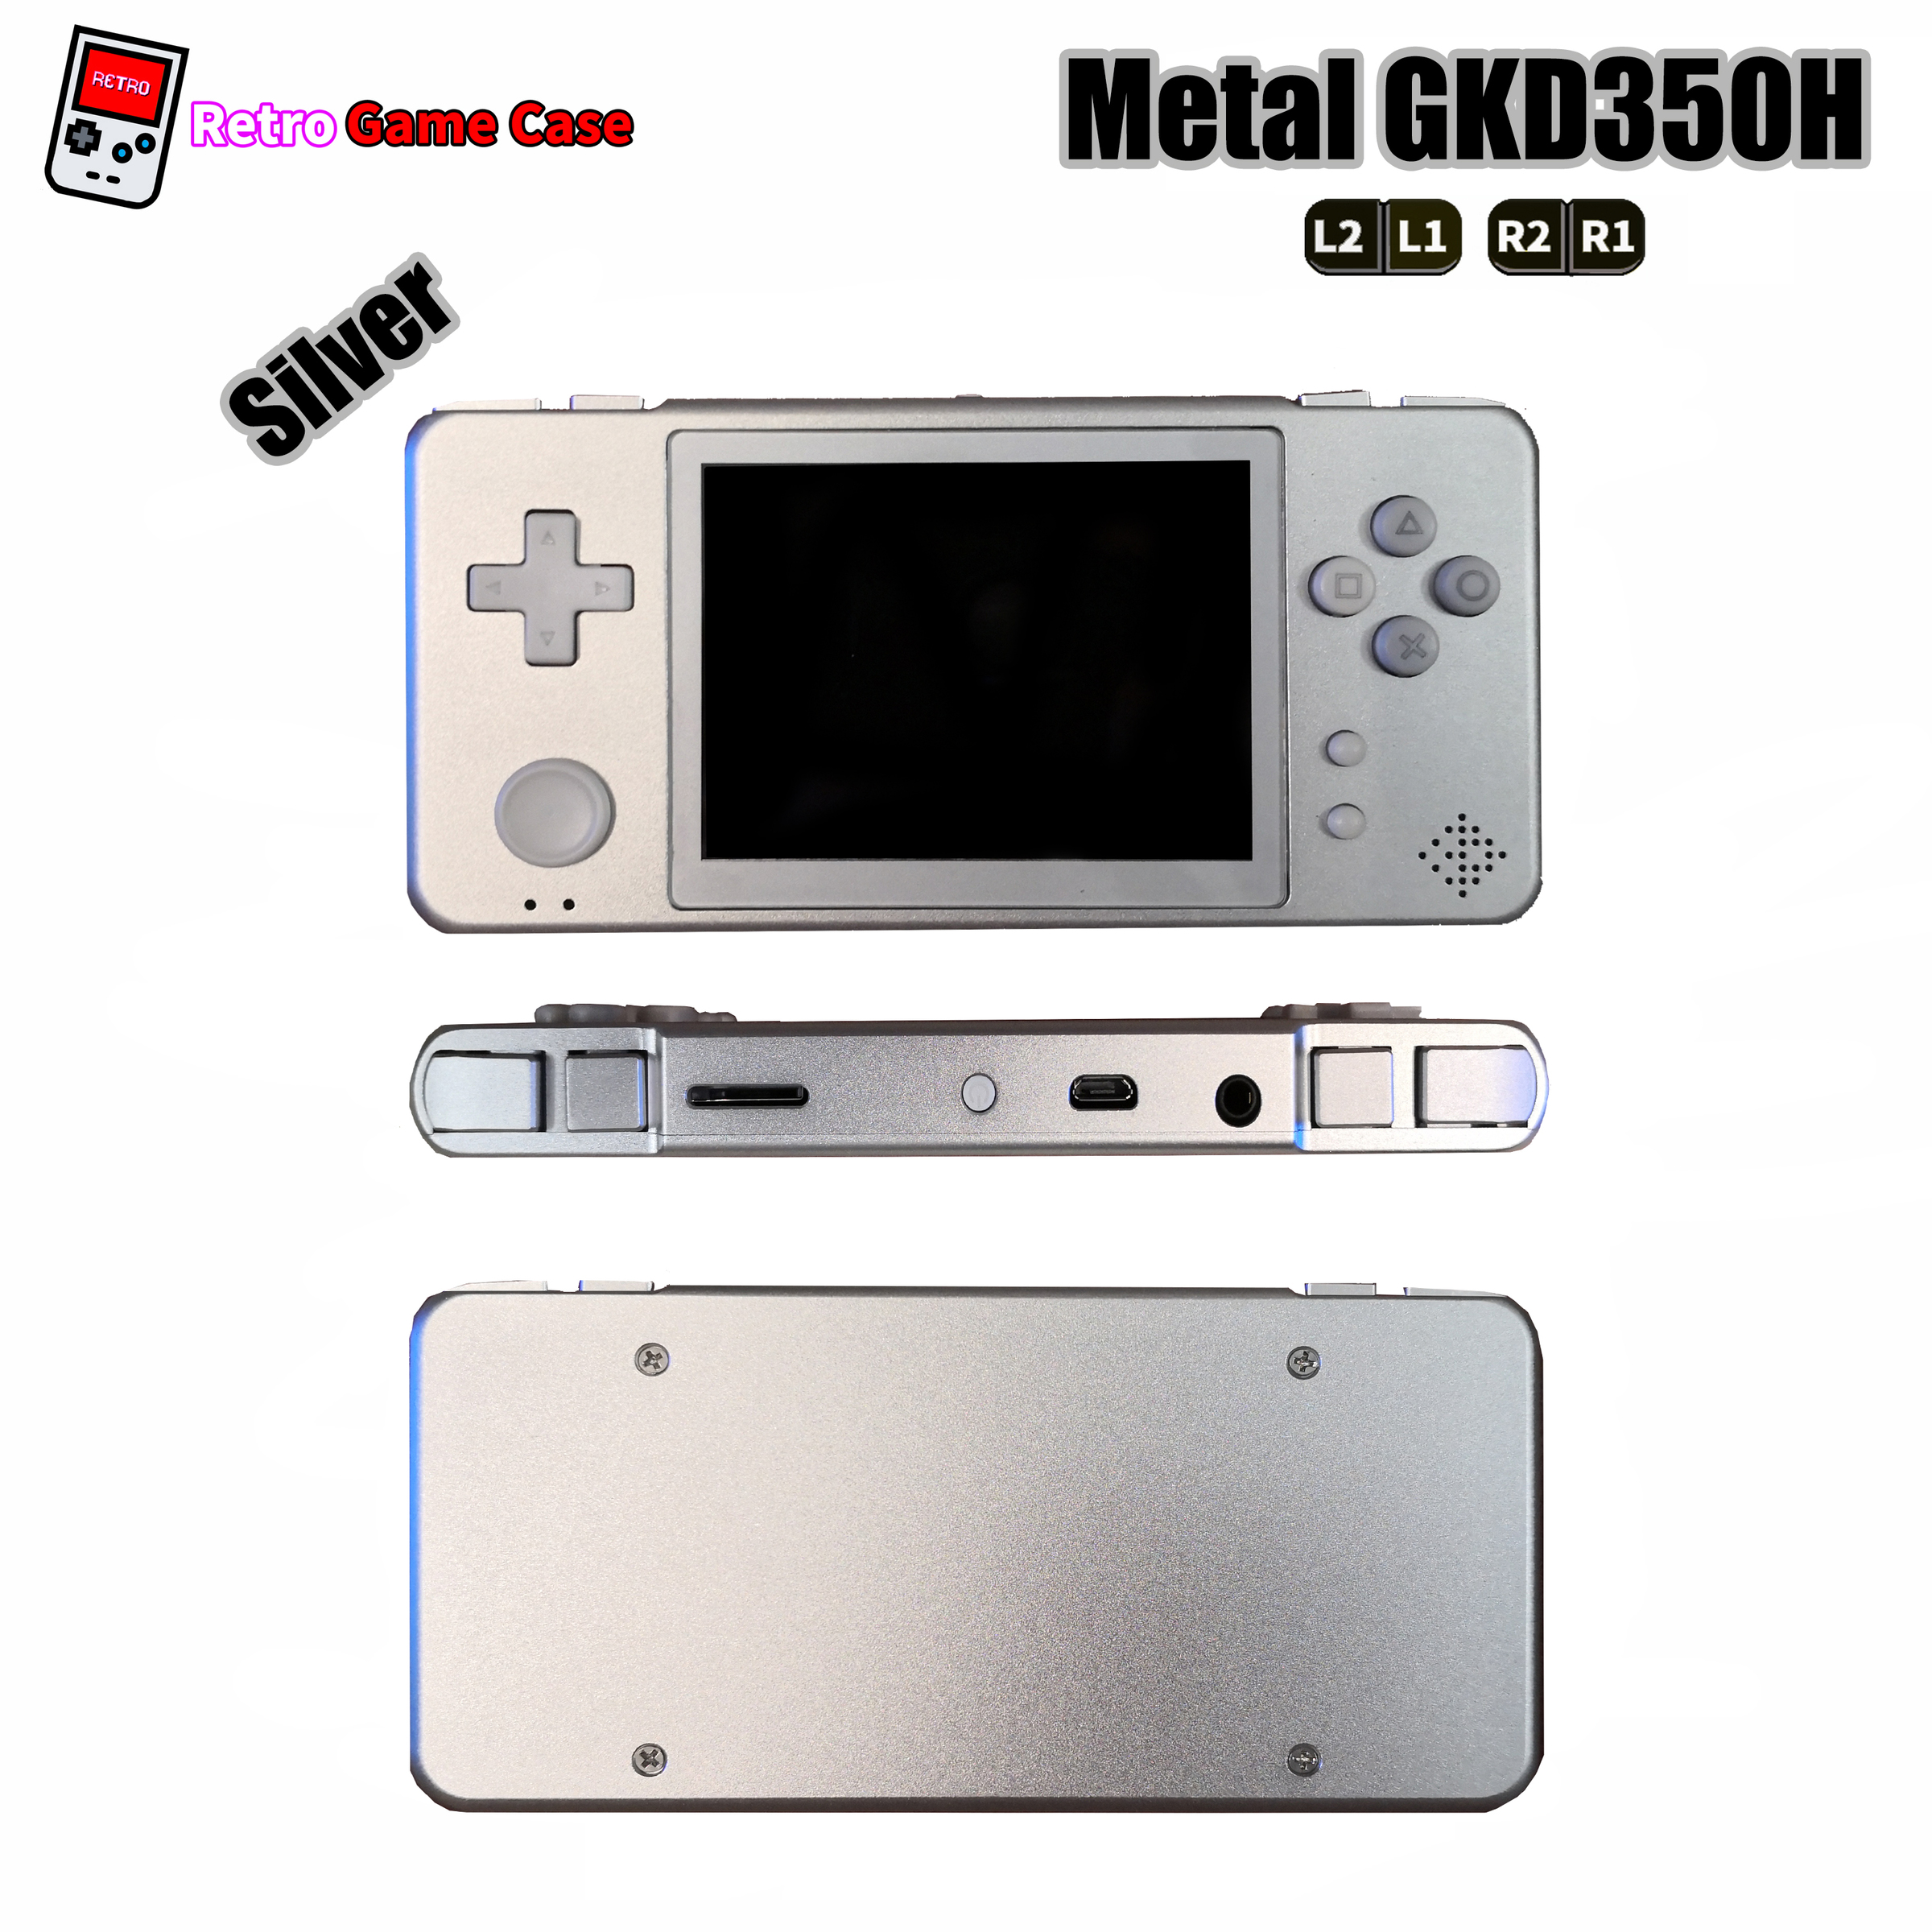 My_retro_game_case_Game_Kiddy_GKD350H_Metal_console_Silver.jpg